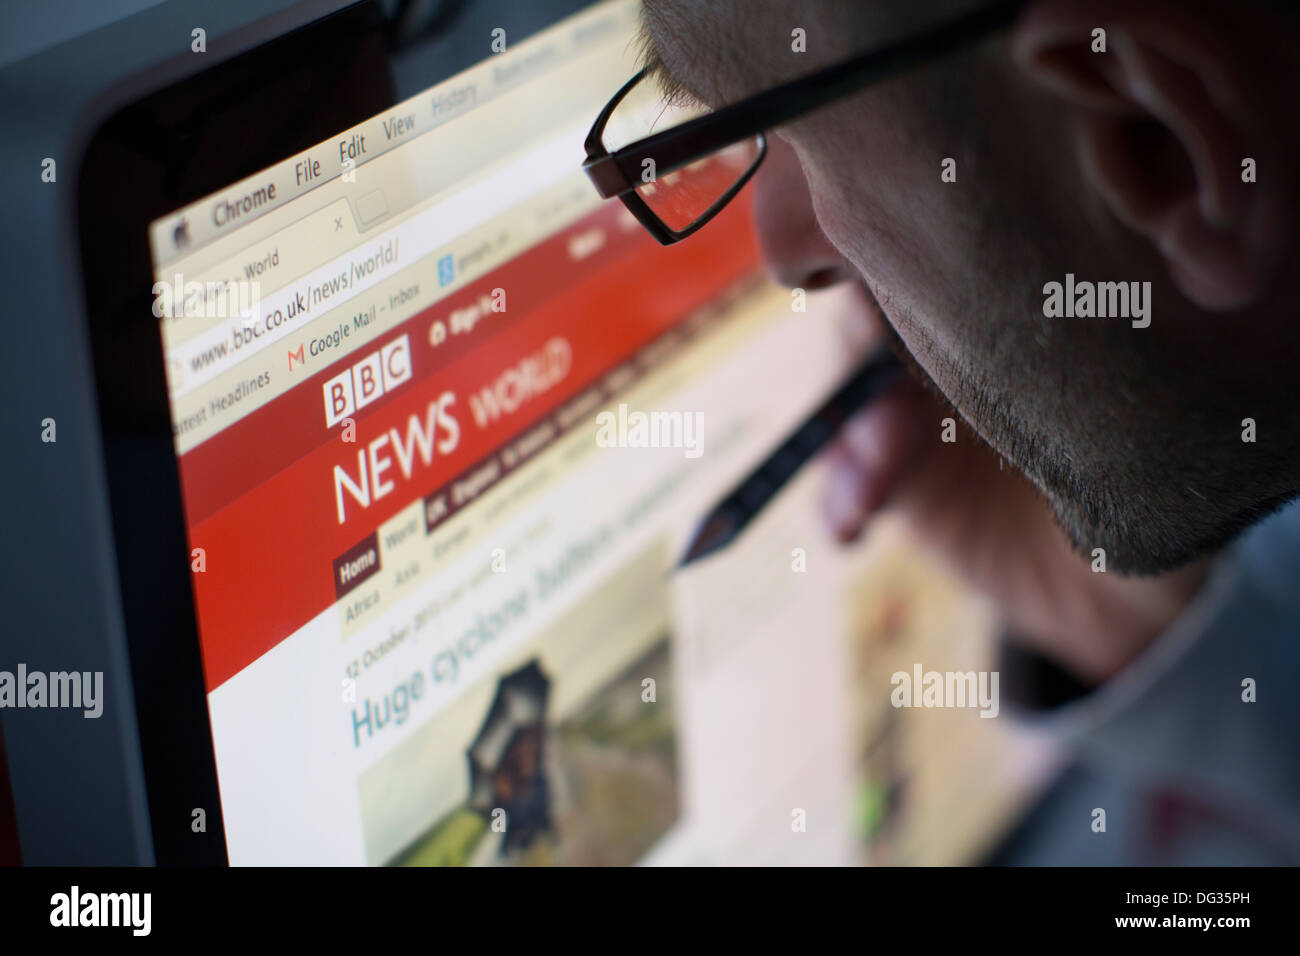 Adult male looking at the online internet website of bbc news - Stock Image